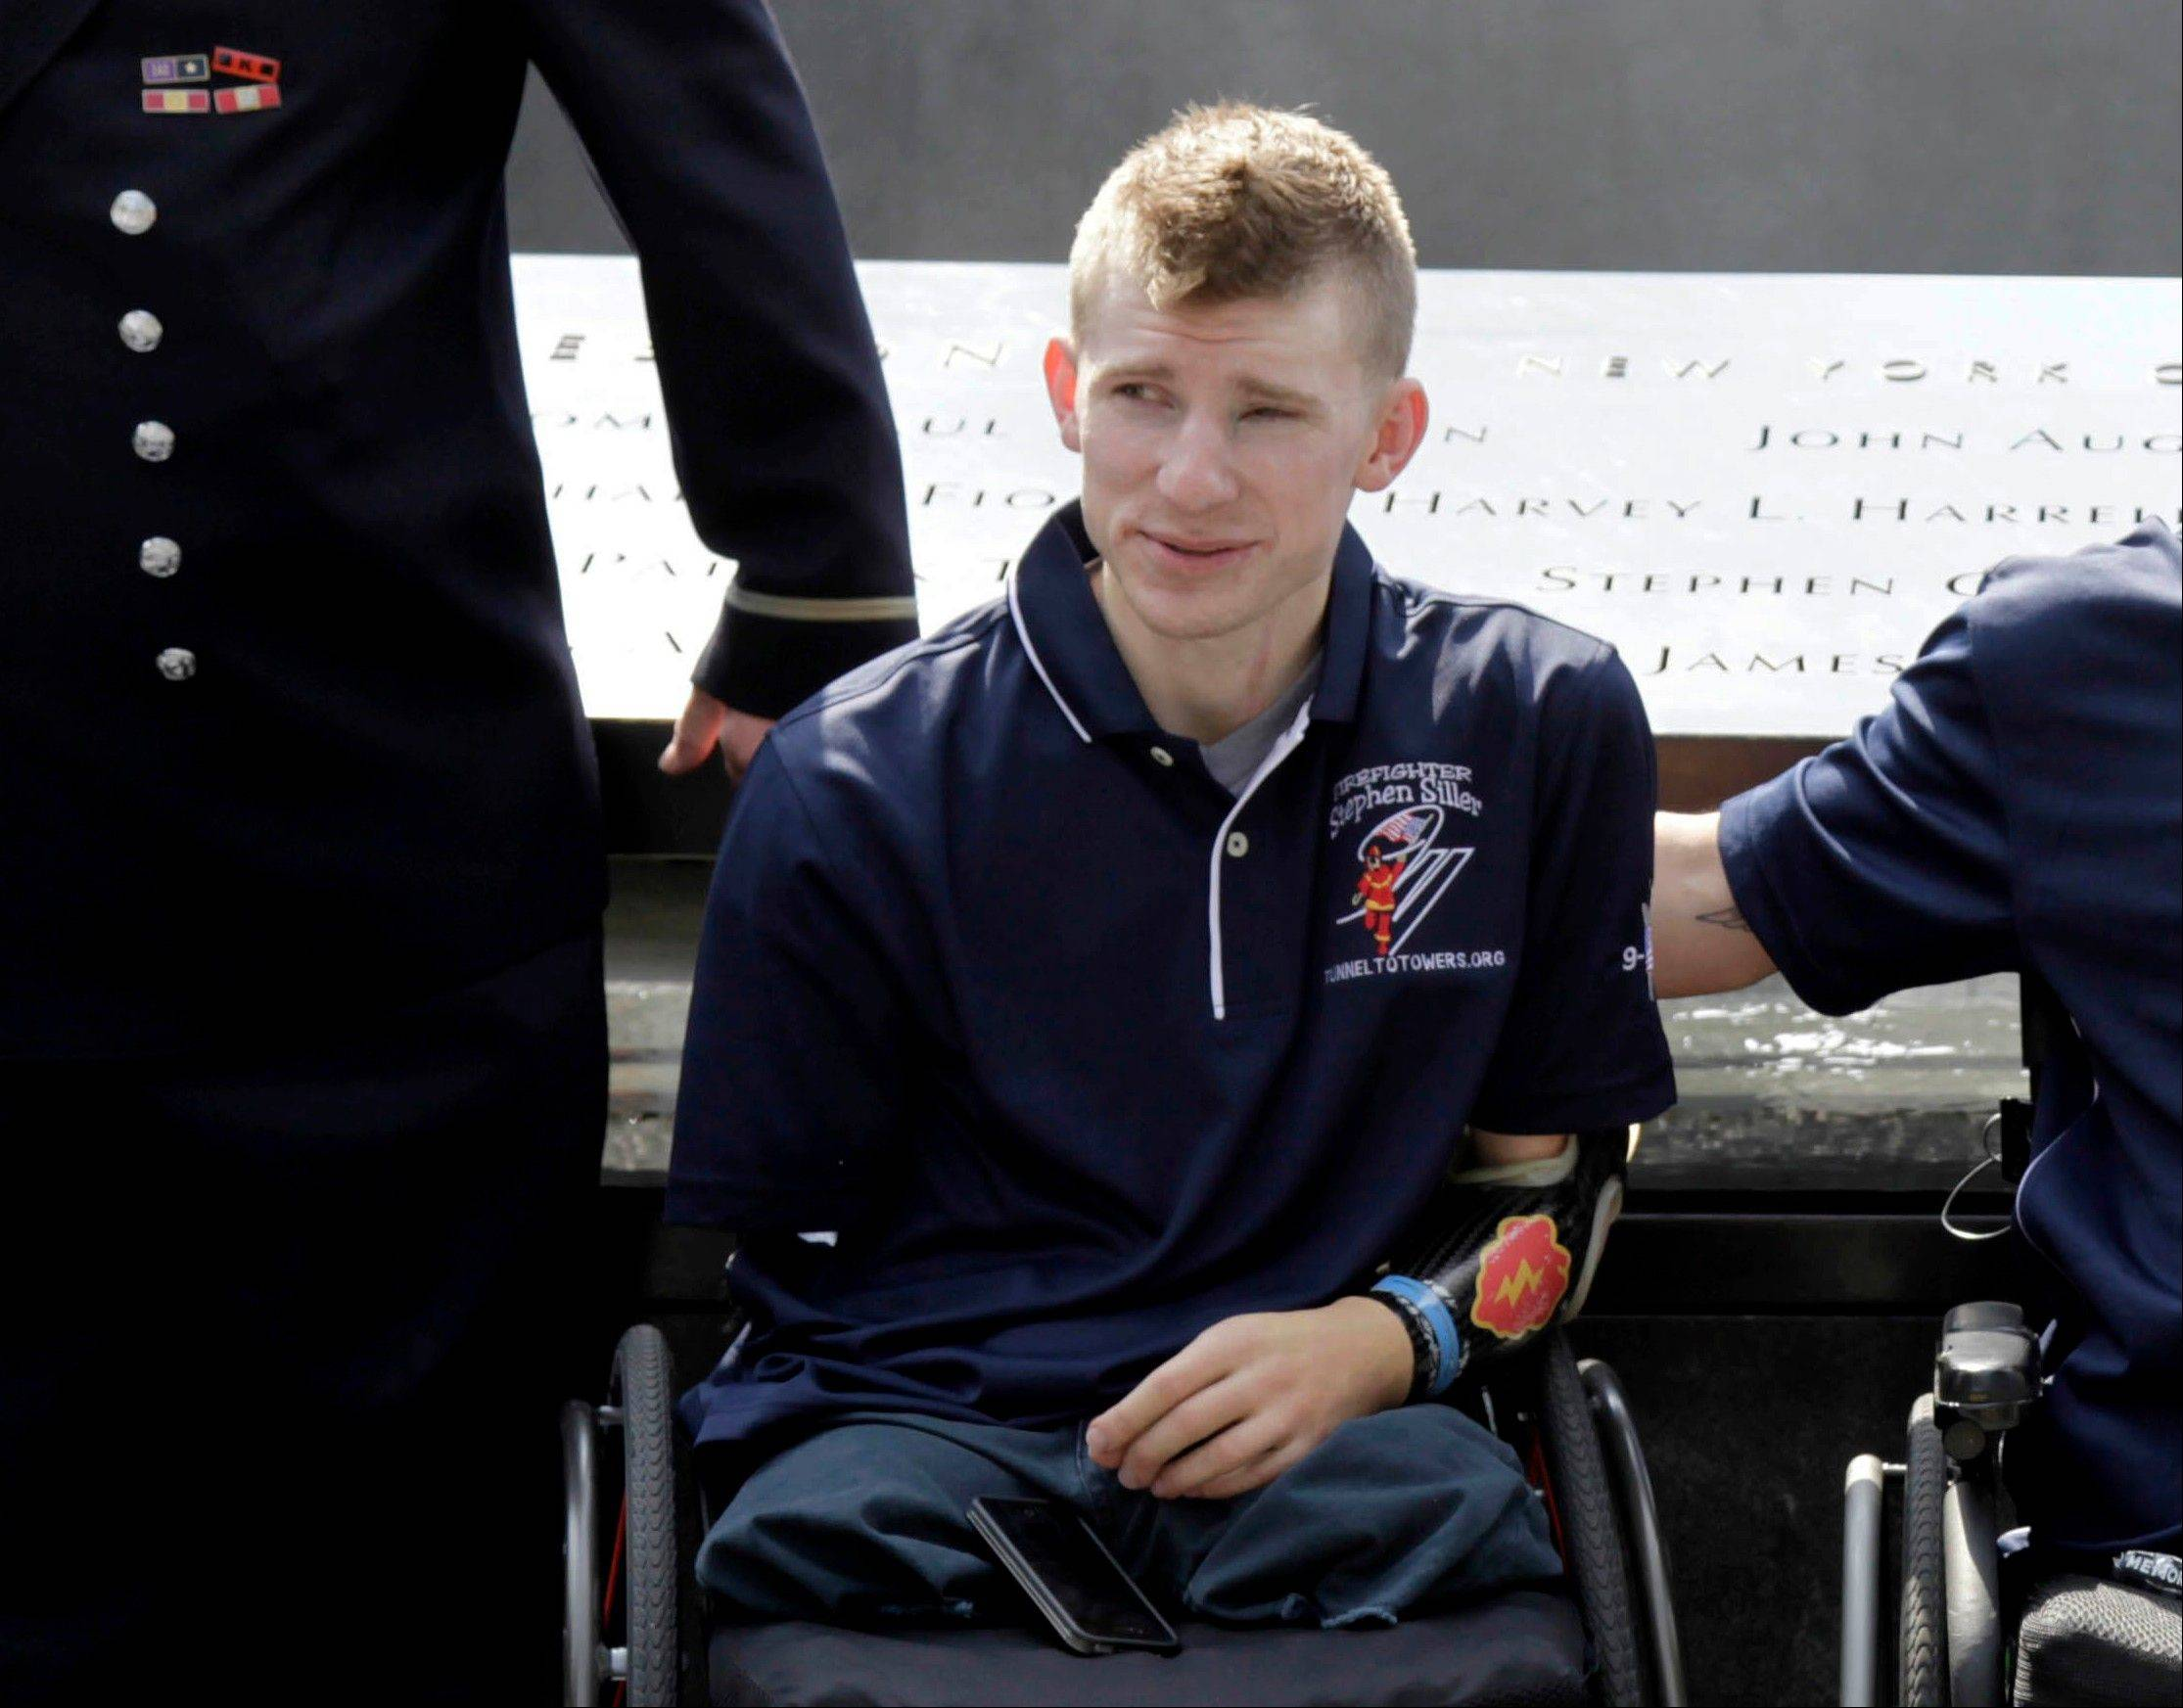 Army Sgt. Brendan Marrocco of Staten Island, N.Y., wearing a prosthetic arm, poses for a photo at the 9/11 Memorial in New York last July 4. Marrocco, 26, the first soldier to survive losing all four limbs in the Iraq war, has received a double-arm transplant in Baltimore.